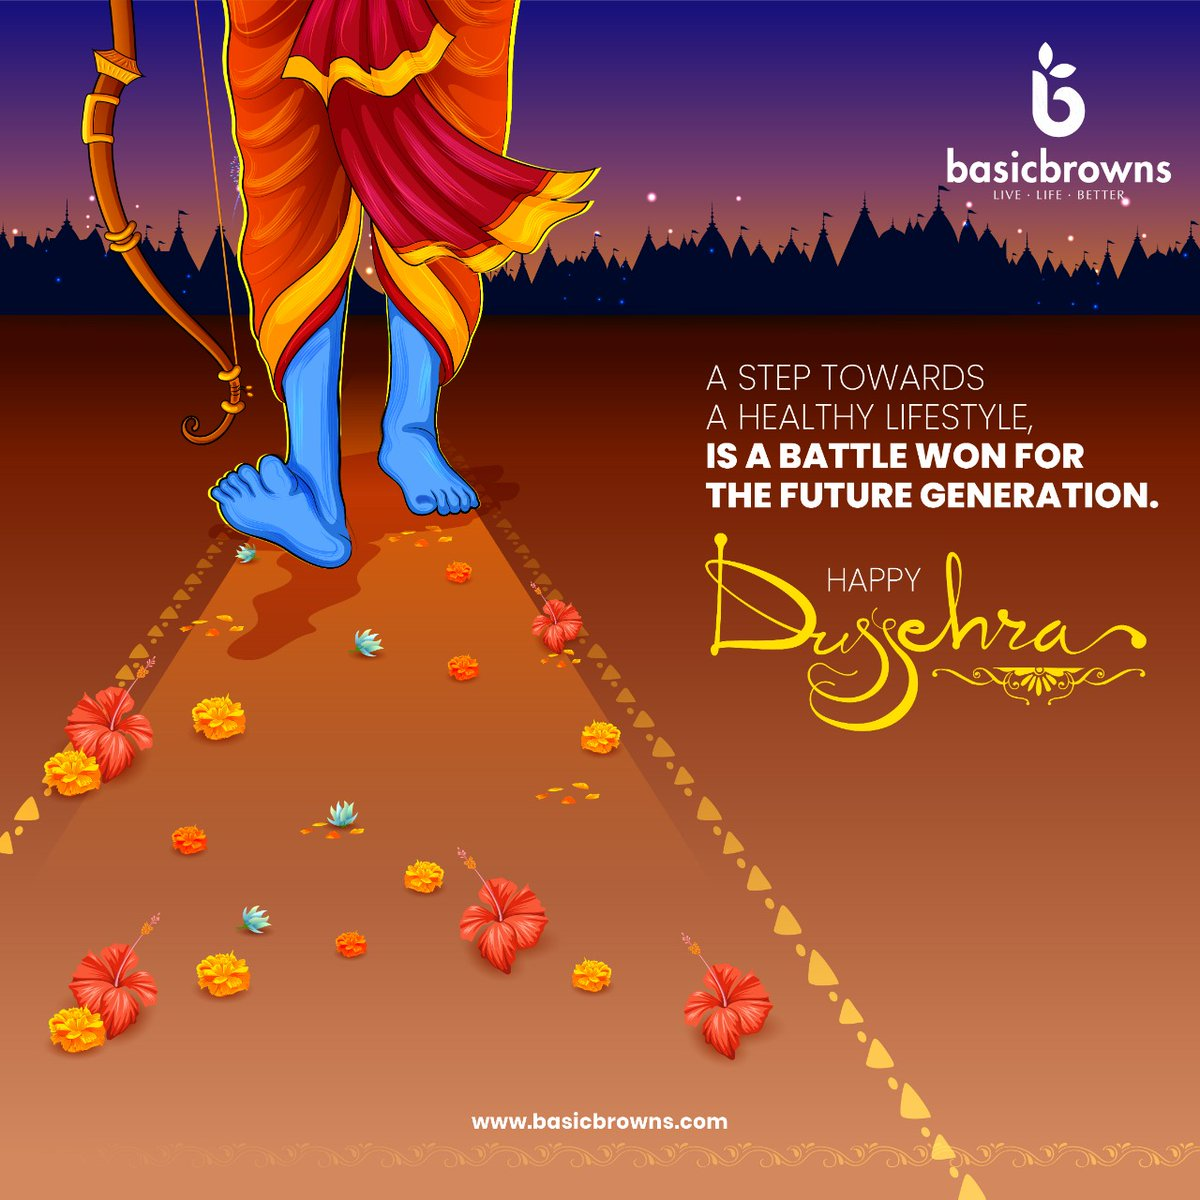 This Dussehra, let's call it an end to the chemical influenced way of living because that's the one change which can bring more positivity into our lives. . . . #basicbrowns #livelifebetter #forabettertomorrow #hyderabad #dussehra #dussehra2020 #dussehraspecial #happydussehra https://t.co/r1onkicwkk